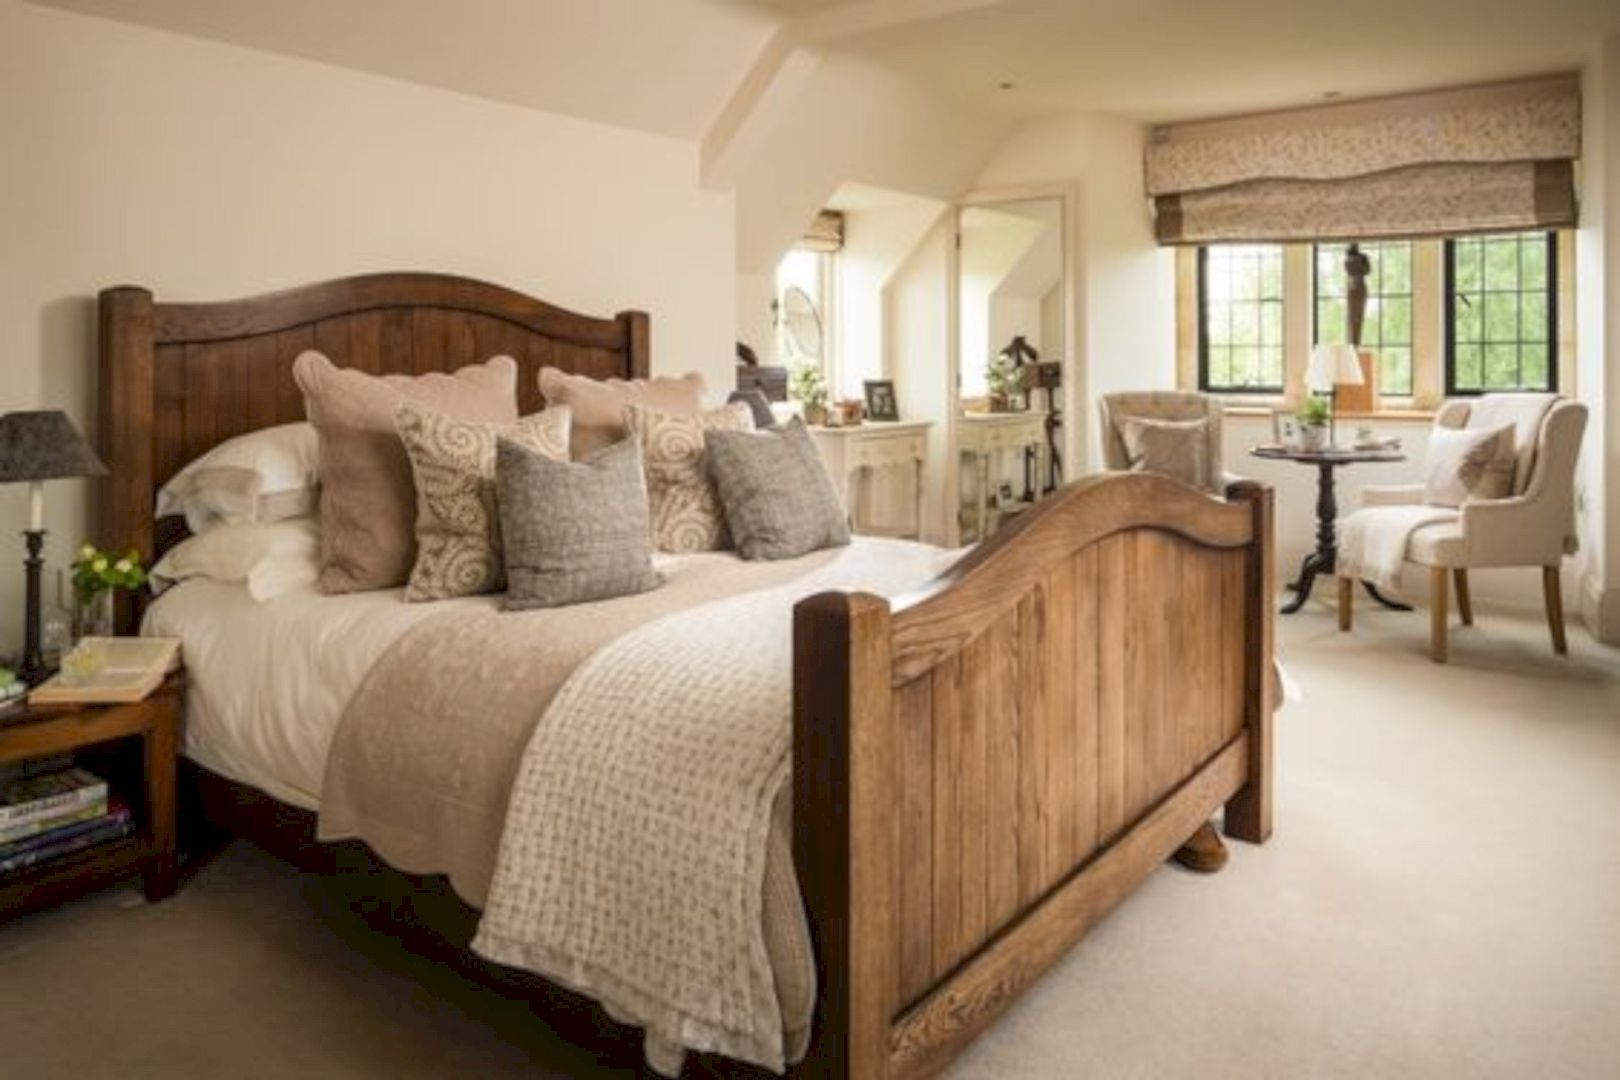 15 Amazing English Country Room Decoration Ideas | Gorgeous Interior on country cottage blue bedroom, vintage decorating, country master bedroom, country bedroom fall, country modern bedroom, country bedroom themes, country living bedroom, country room, french interior decorating, country bedroom interior, country bedroom curtains, country bedroom bedroom, country style bedrooms, country guest bedroom, country bedroom diy, bathroom decorating, country bedroom sets, country bedroom organization, country bedroom makeover, country bedroom walls,